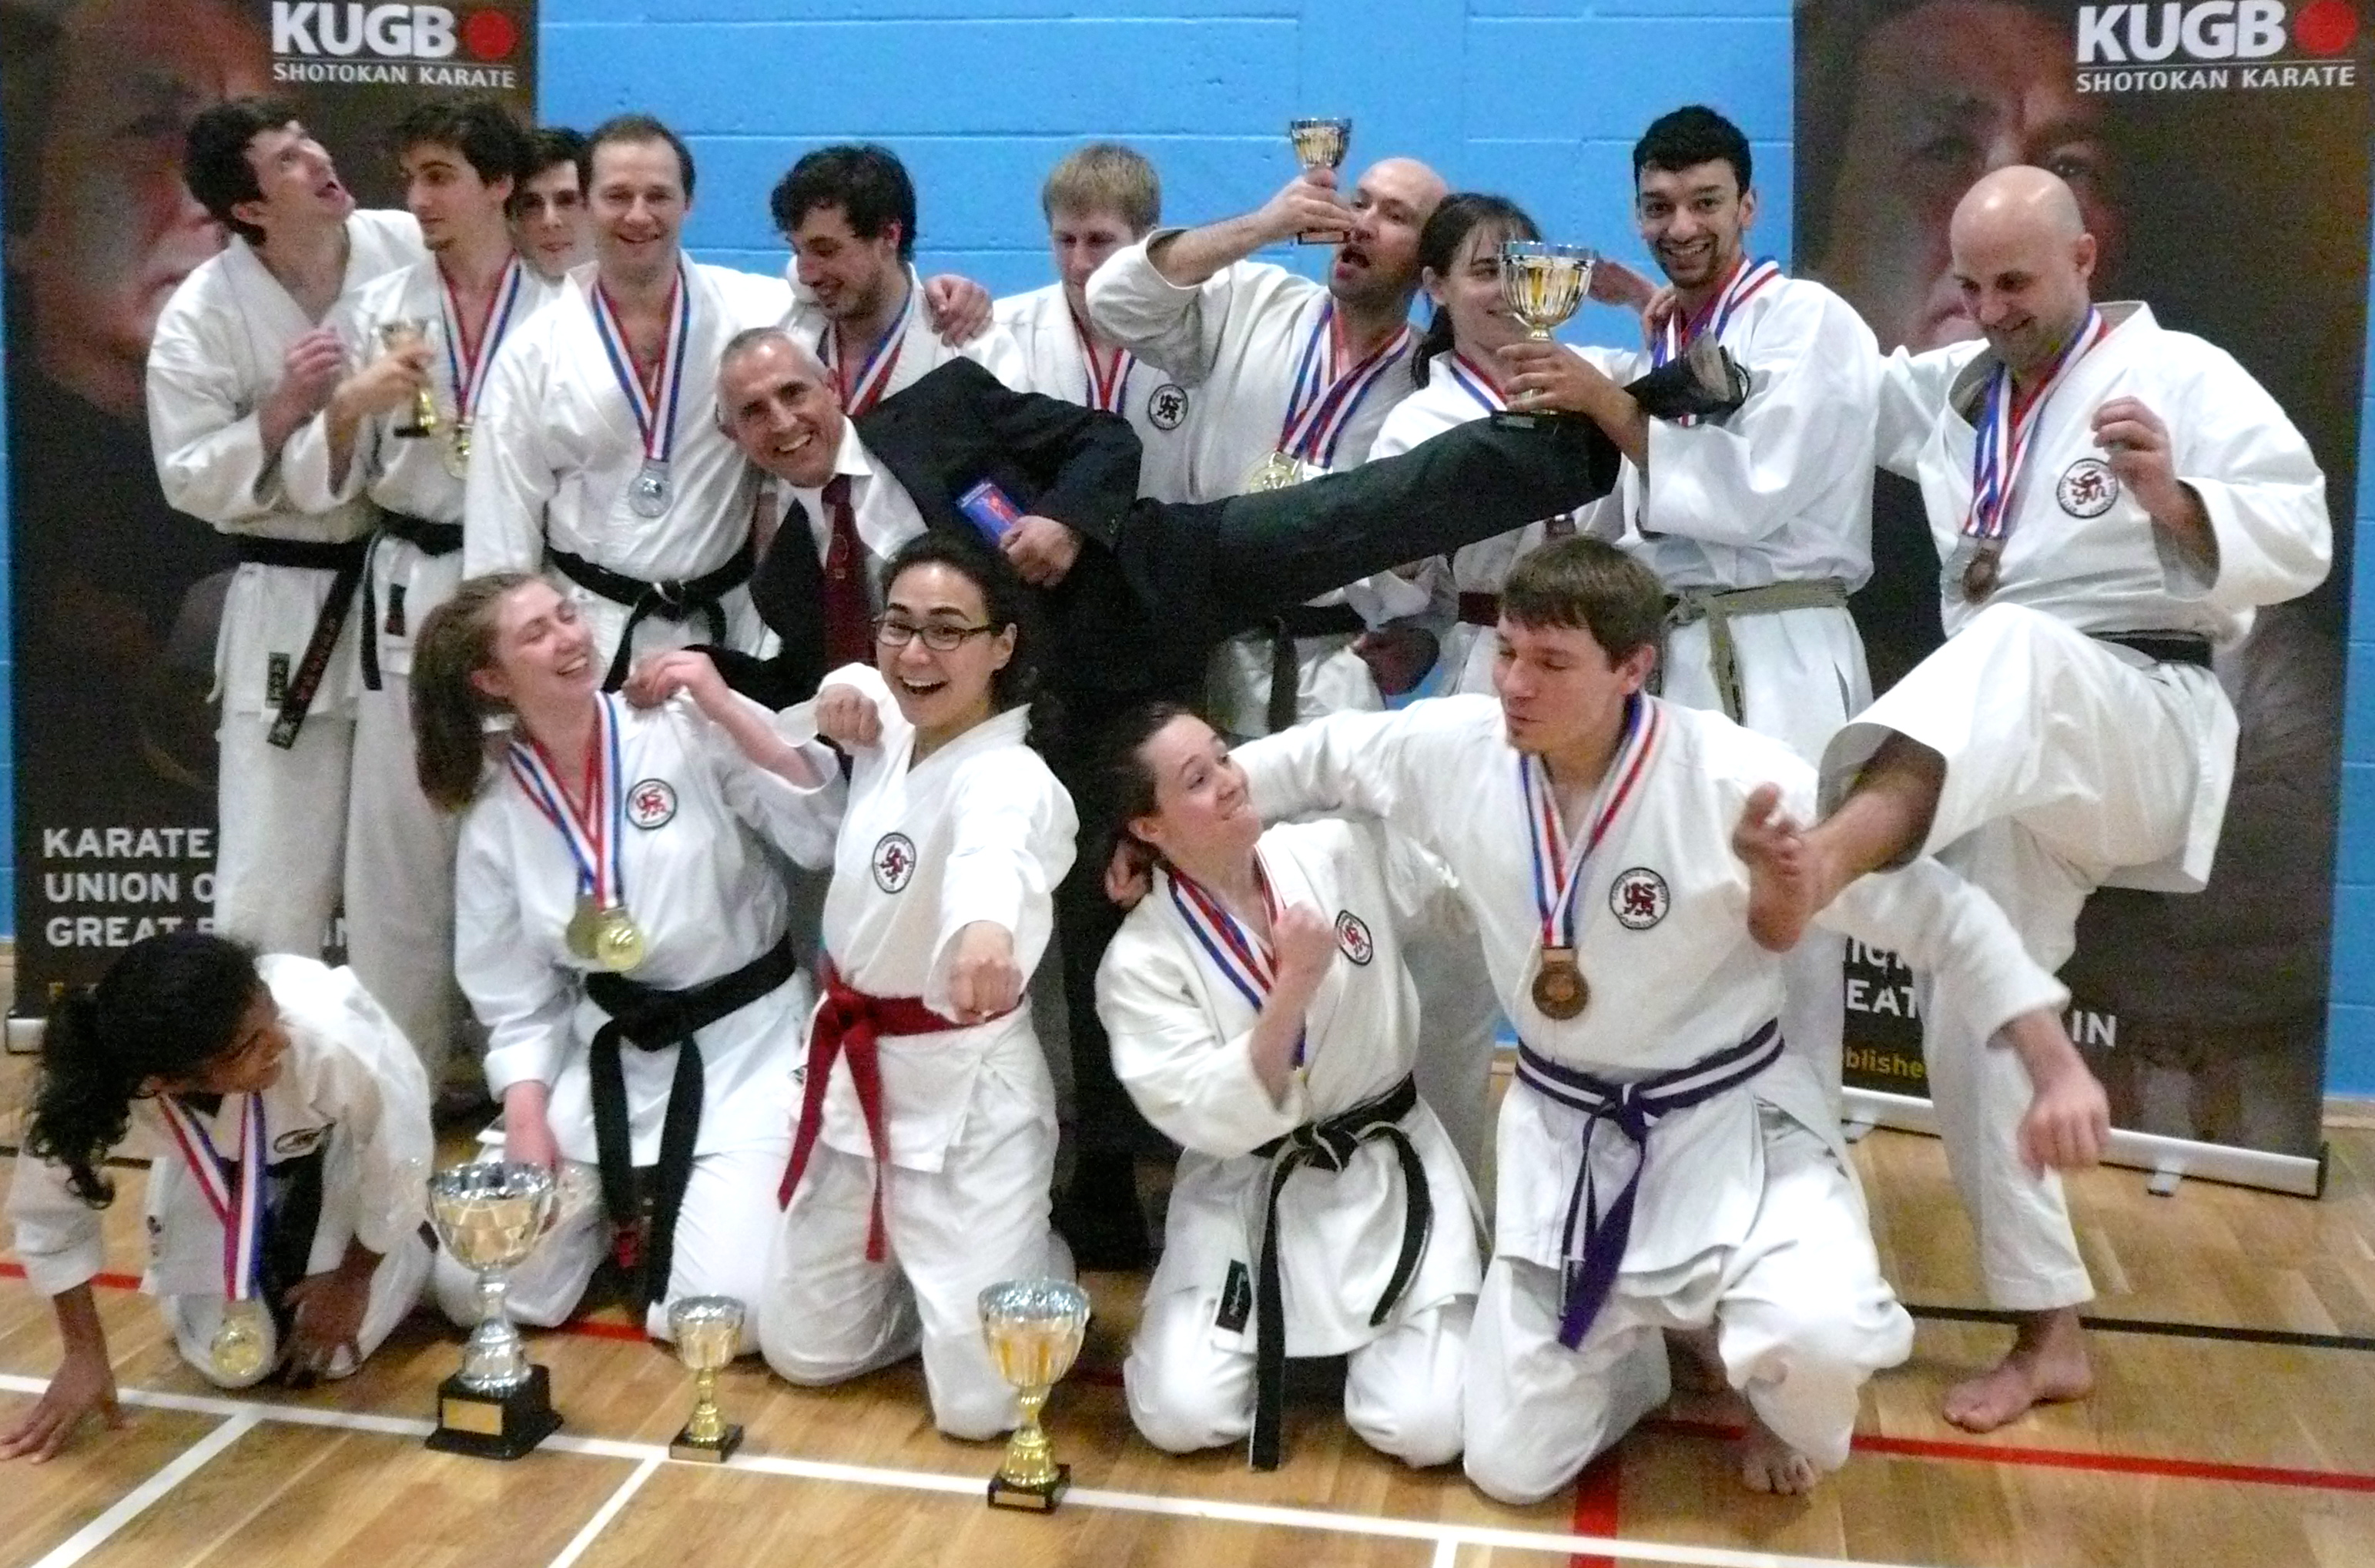 CUKC triumphs at Central Regions